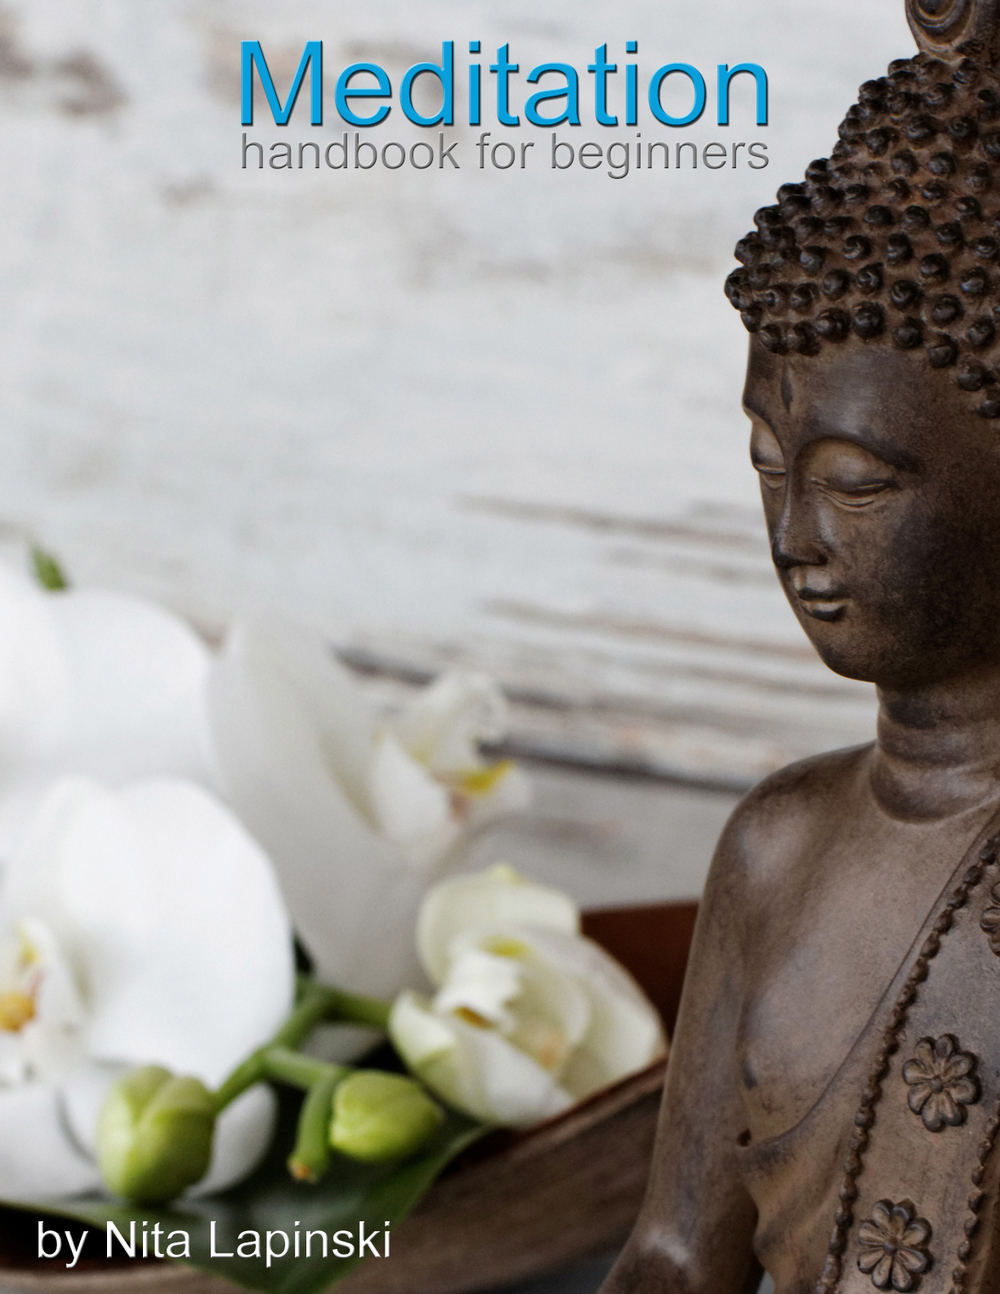 Meditation Handbook for Beginners by Nita Lapinski